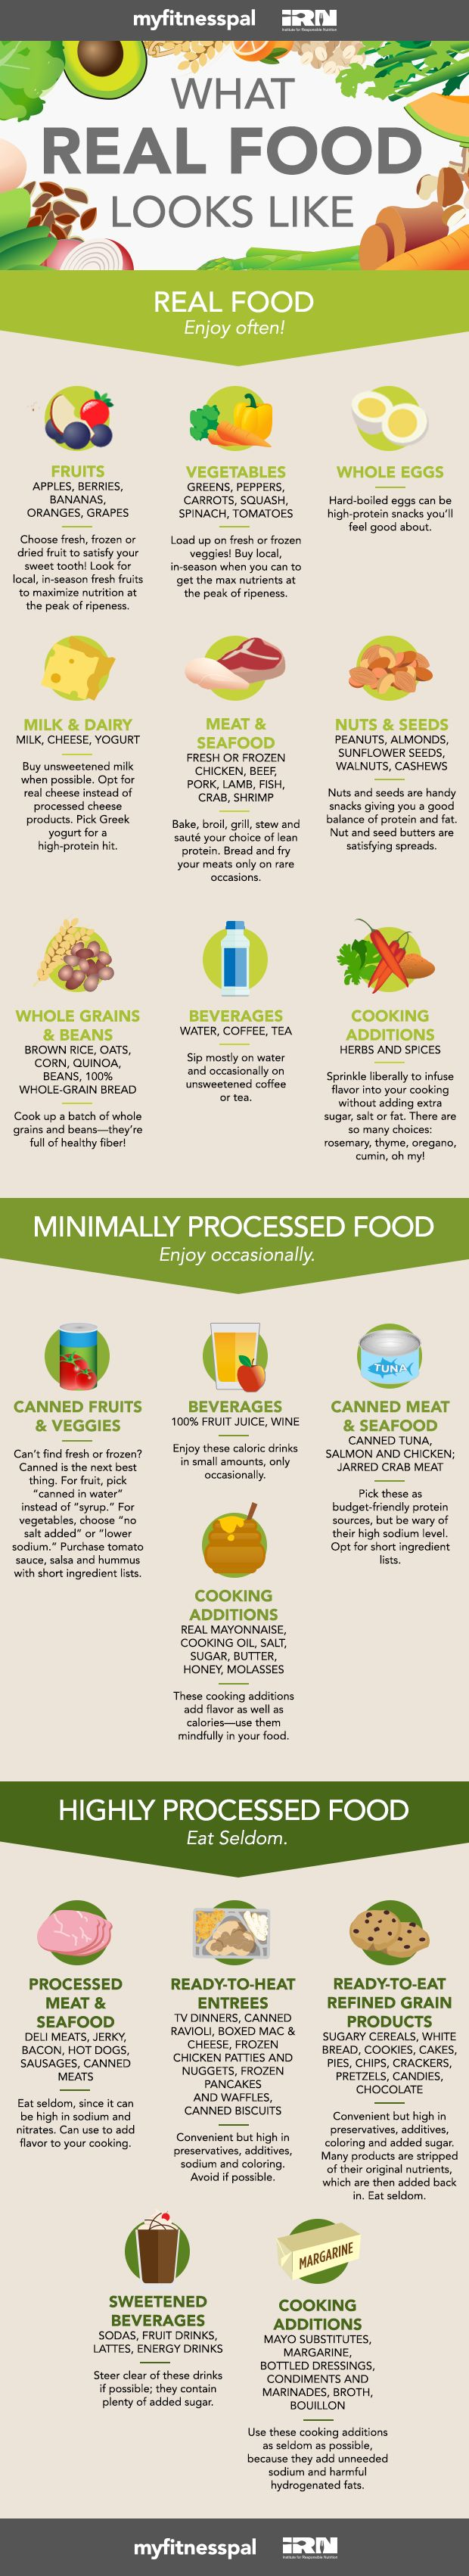 """Healthy eating happens when you choose mostly real foods and very little to no highly processed foods. So what is real food? What is processed food? And what falls in between?"" #eatclean #myfitnesspal"